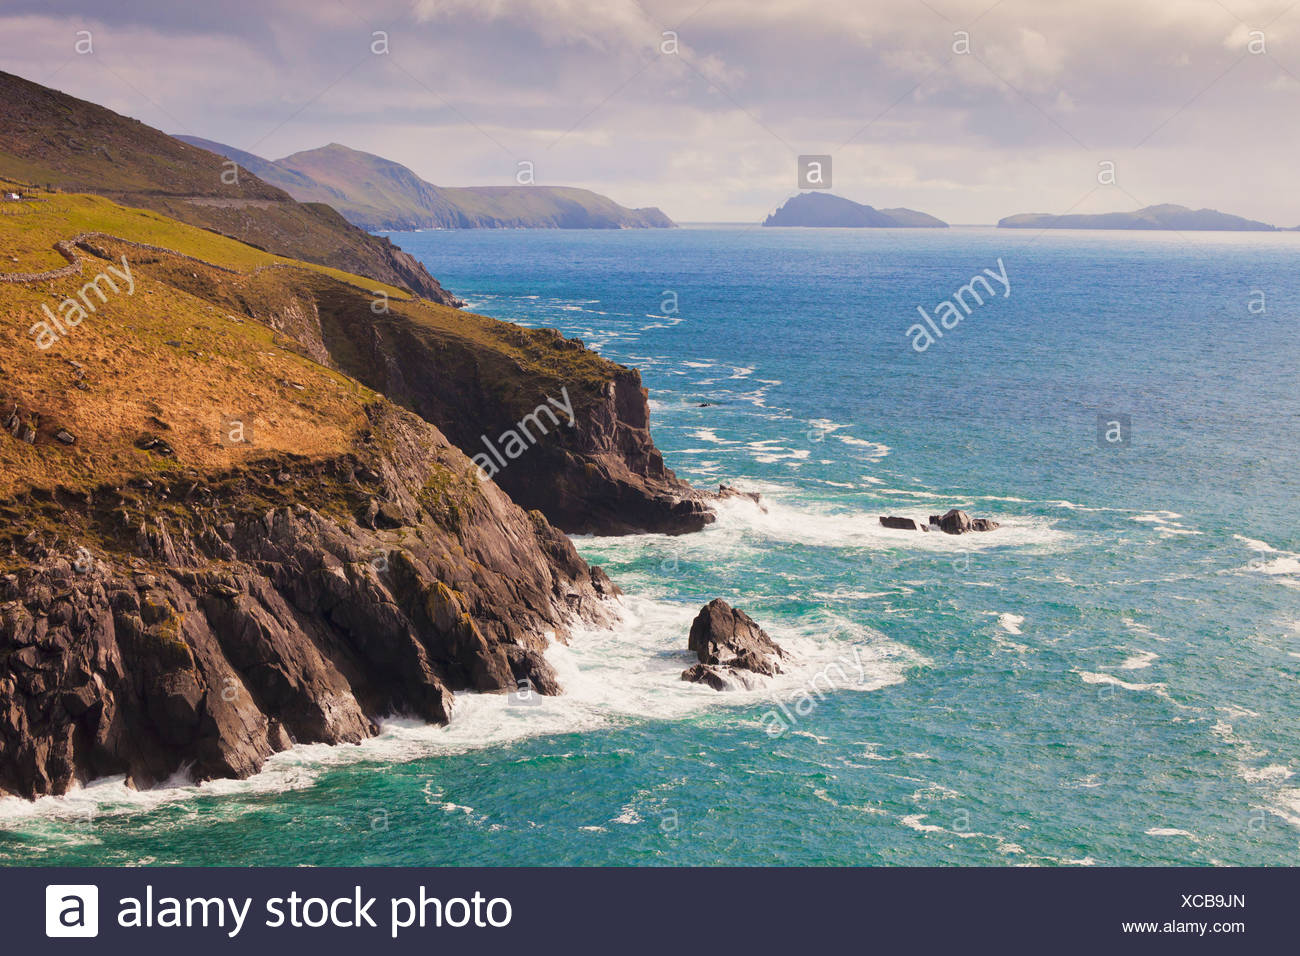 View Along The Coast To Blasket Islands On The Horizon Near Slea Head; Dingle Peninsula County Kerry Ireland Stock Photo